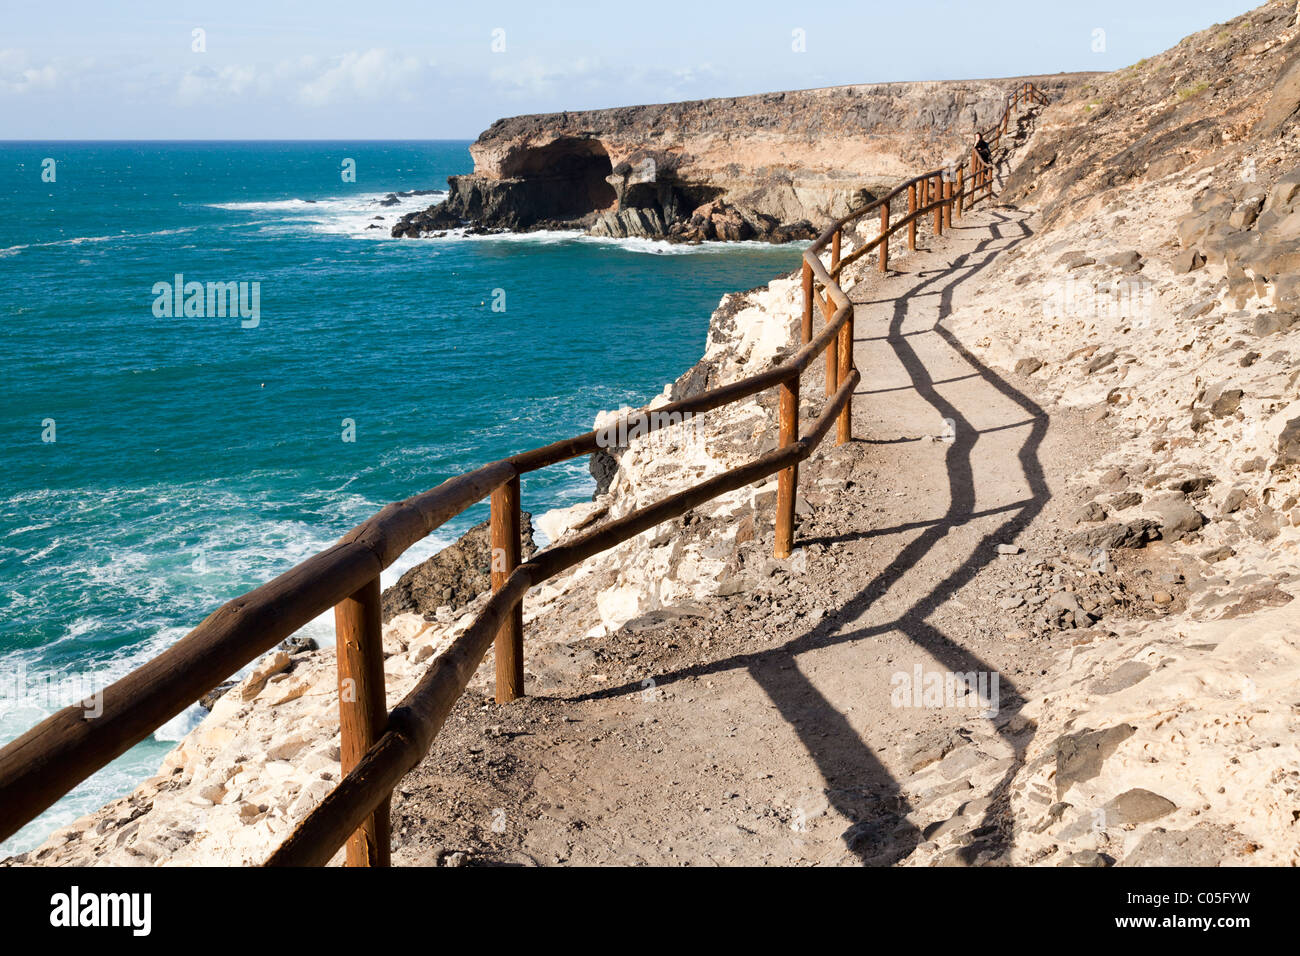 Clifftop footpath walk to see the caves near the seaside village of Ajuy on the west coast of the Canary Island - Stock Image